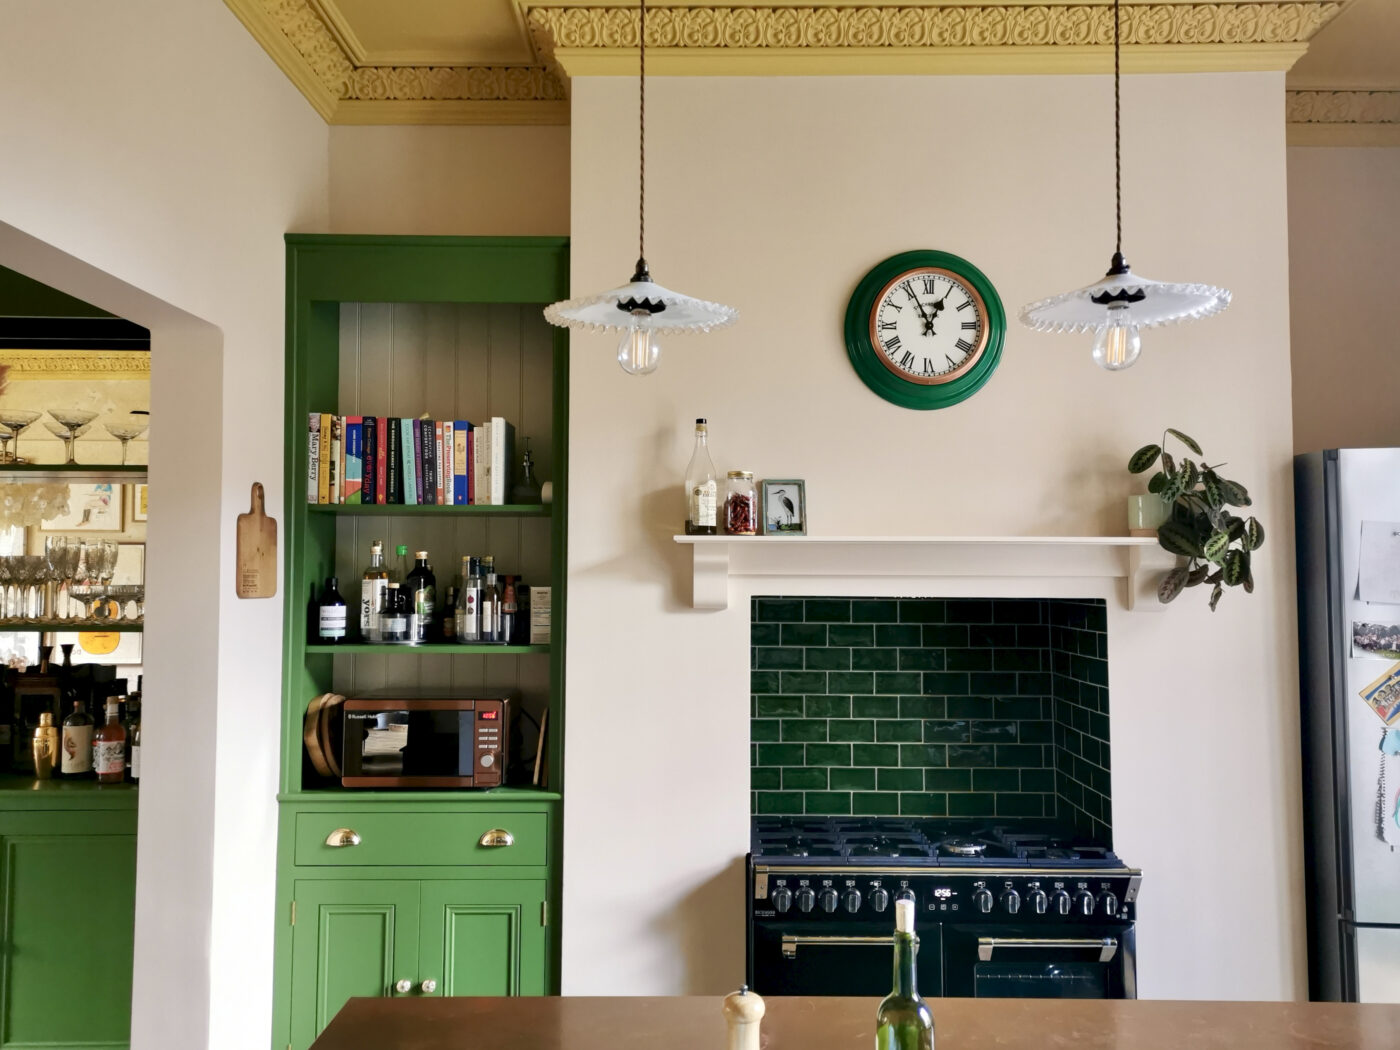 The Victorian Kitchen and Dining Room - the one with the yellow ceiling